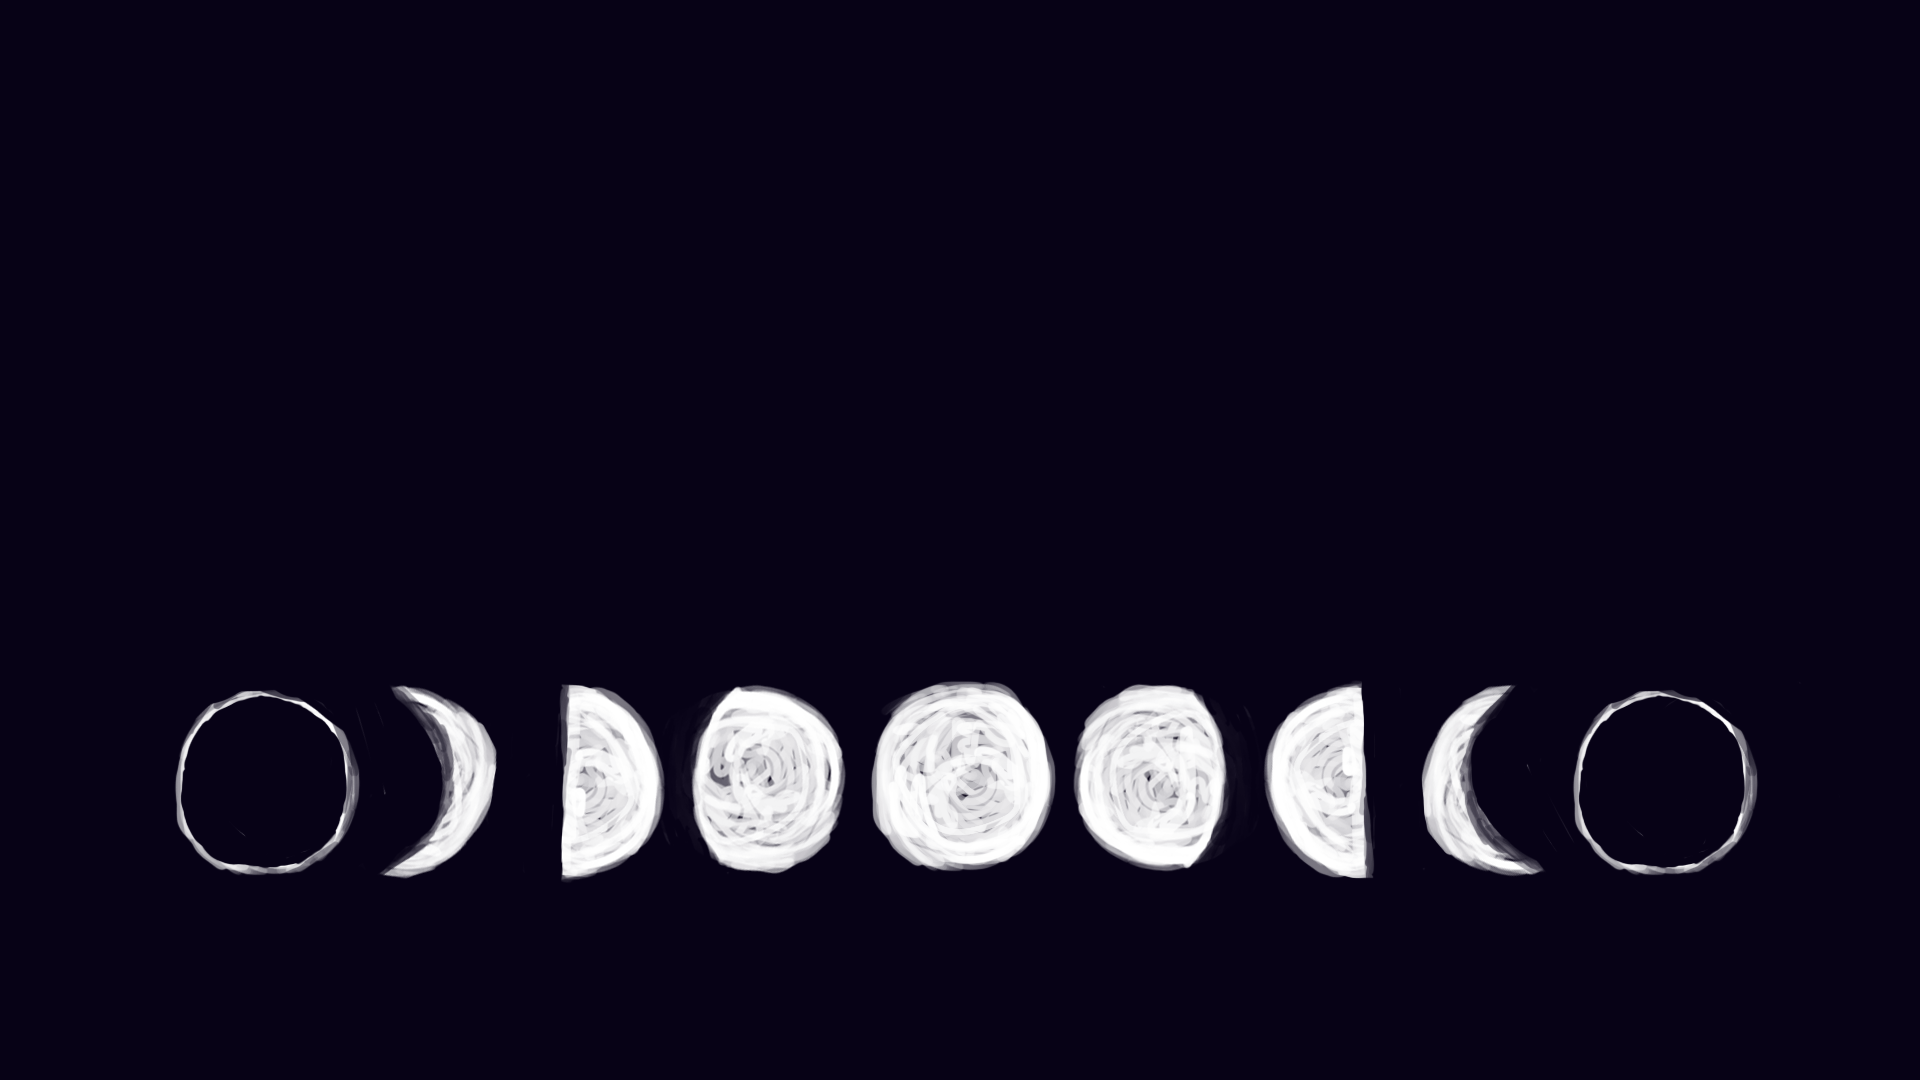 Moon Phases 4k Wallpapers Top Free Moon Phases 4k Backgrounds